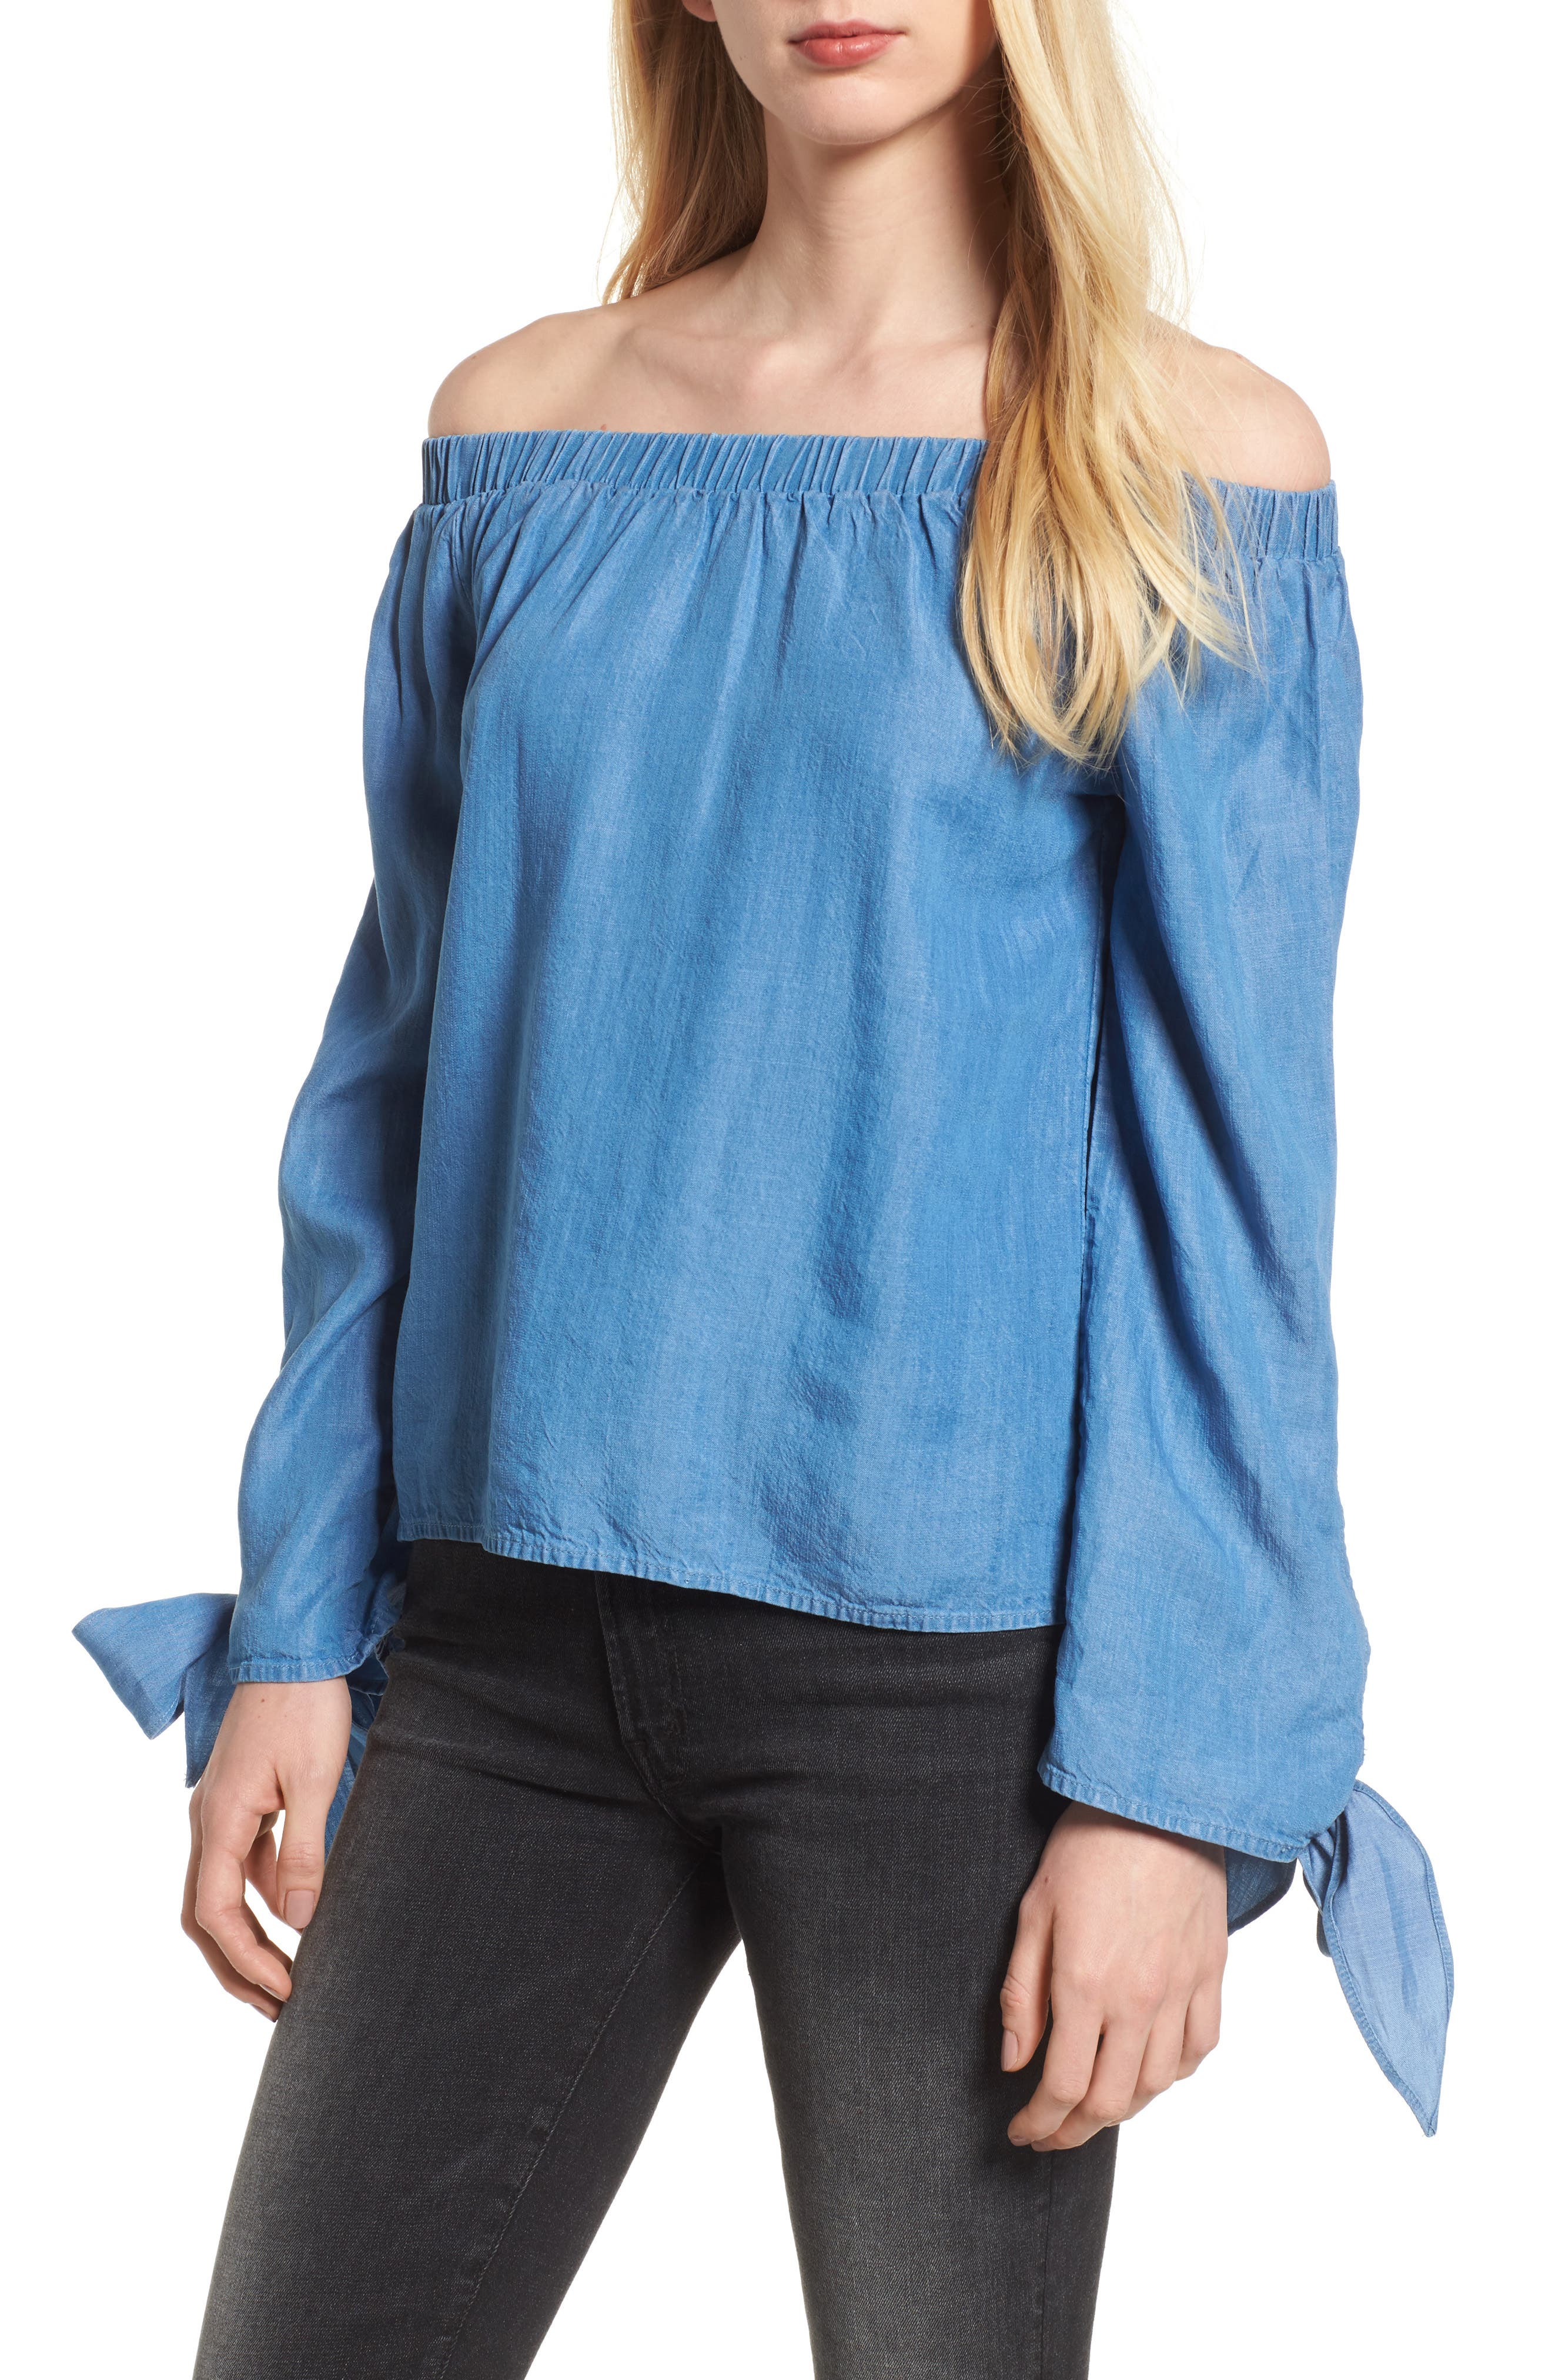 Bishop + Young Avery Off the Shoulder Top,                         Main,                         color, Chambray